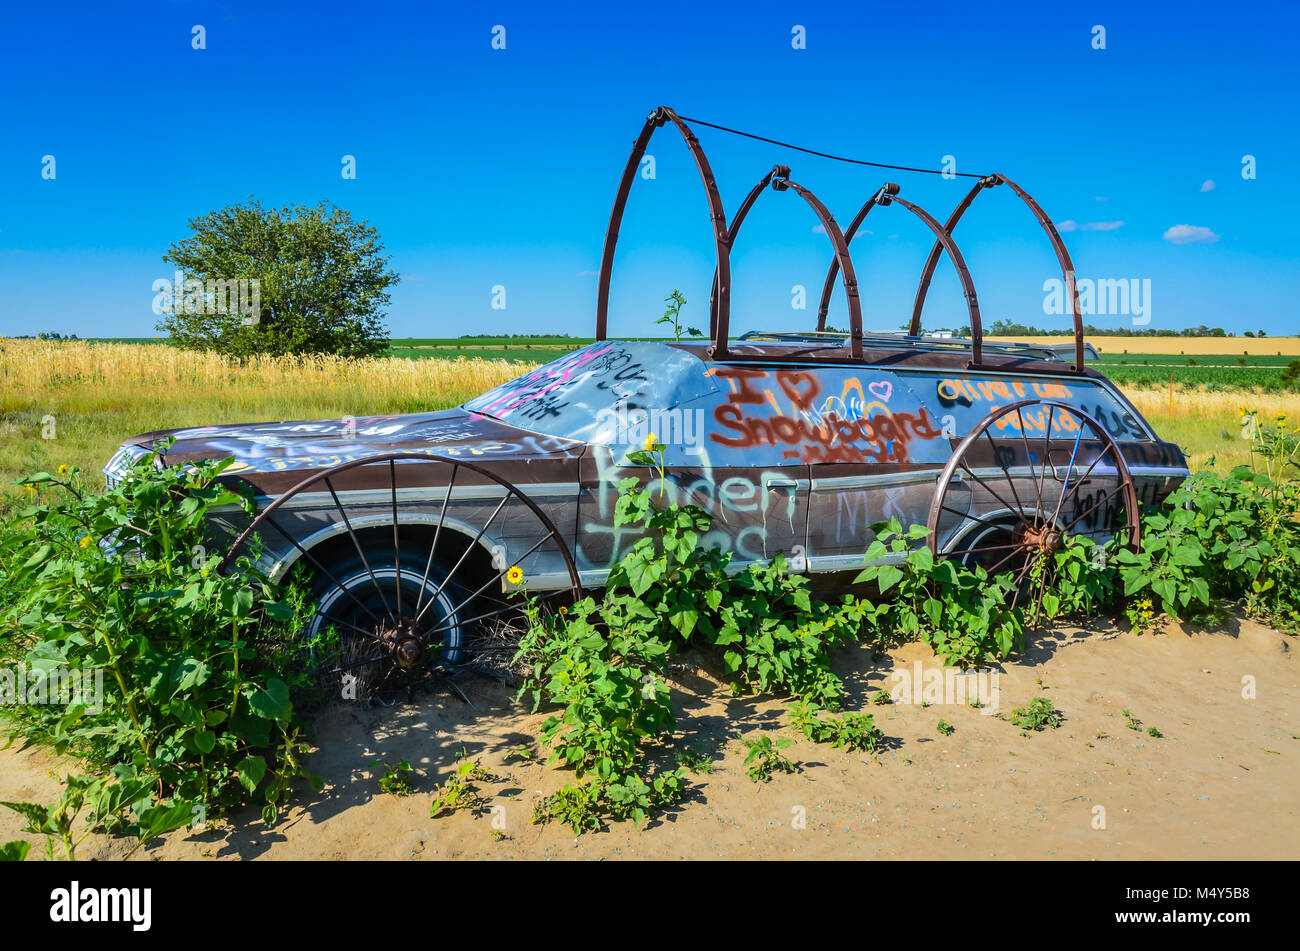 Solo Station Wagon Covered In Wagon Wheels Forms Trellis For Plants